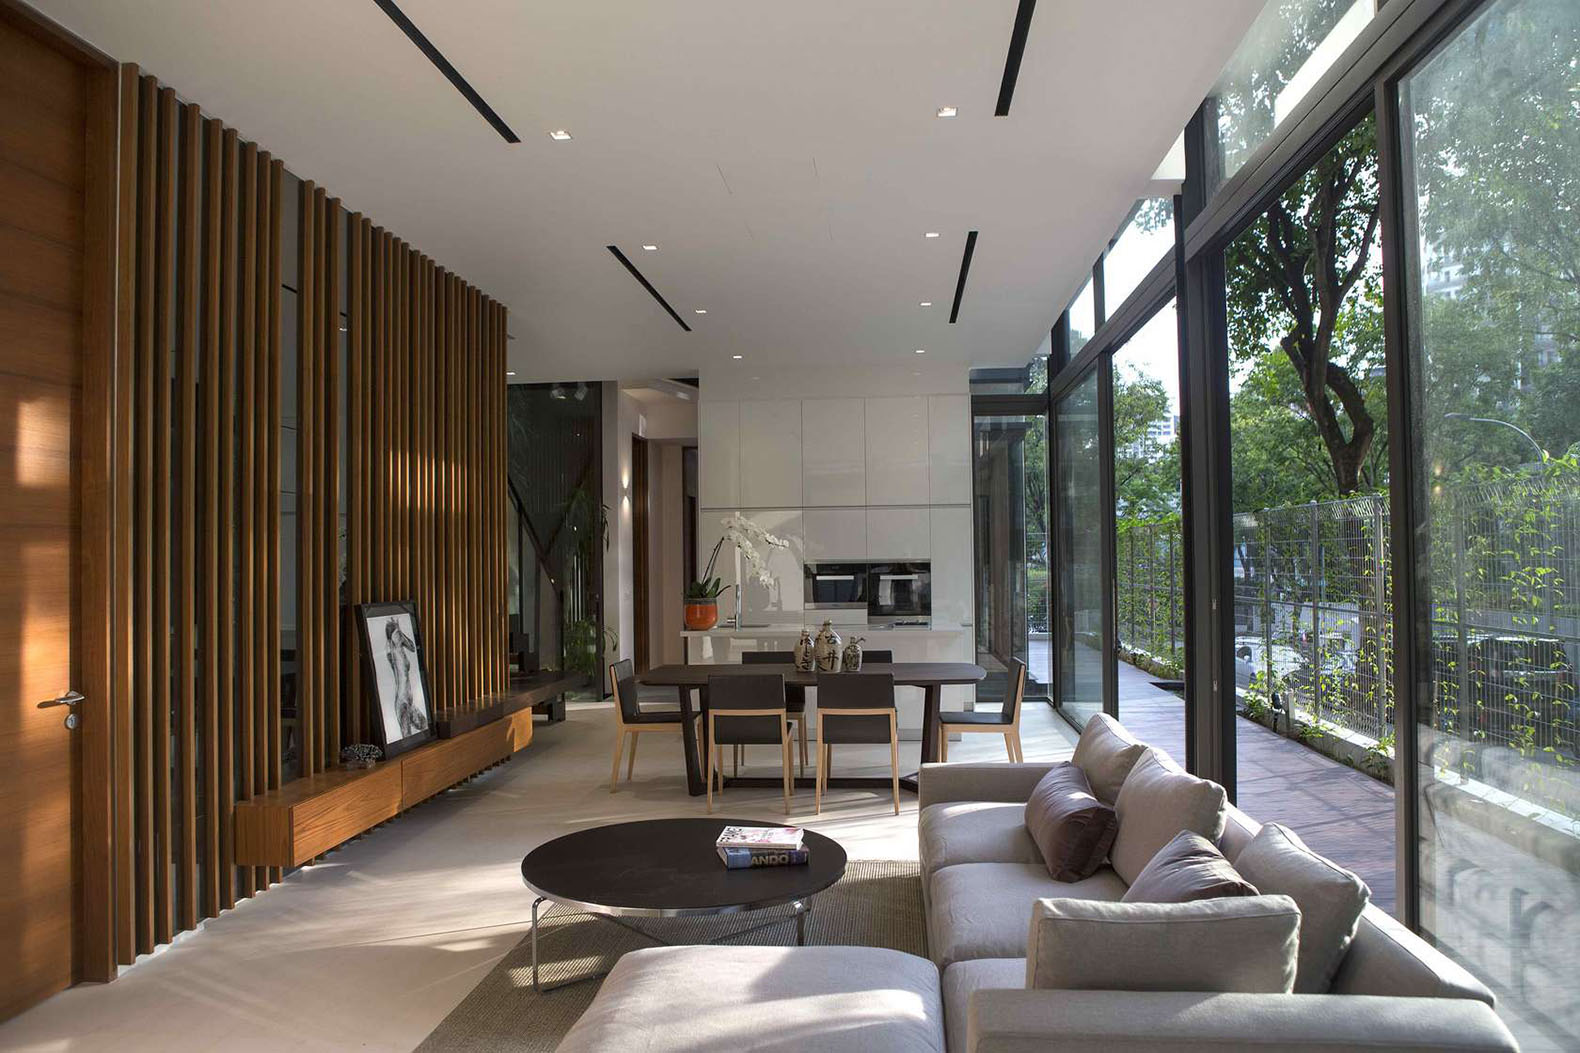 Dynamic residence in Singapore brings nature to the city with a